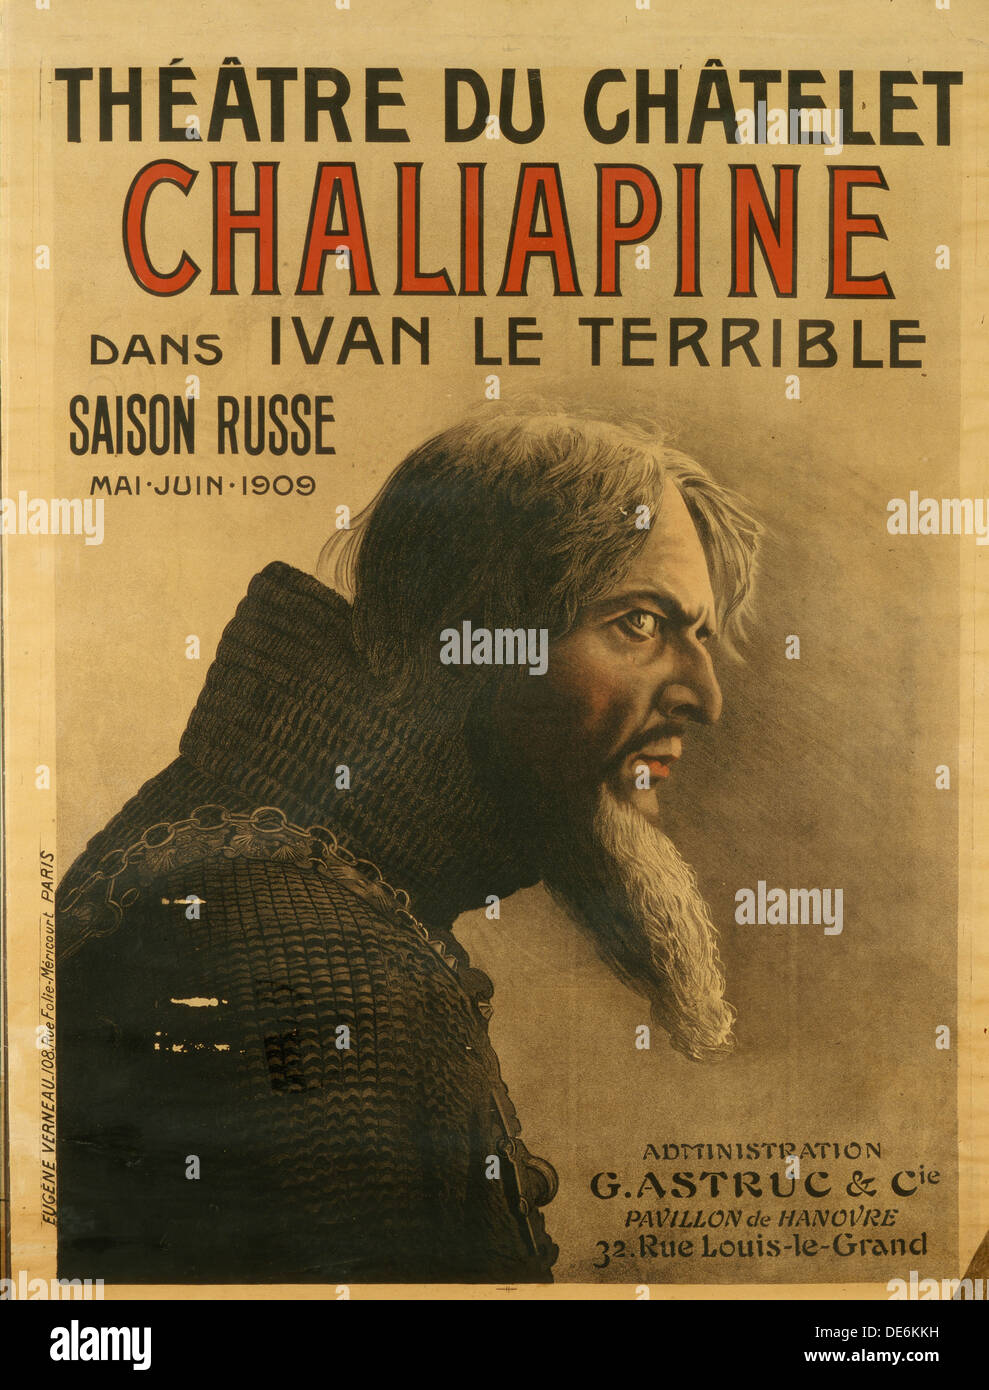 Poster for the Saison Russe at the Théâtre du Châtelet, 1909. Artist: Verneau, Eugene (active Early 20th-century) - Stock Image